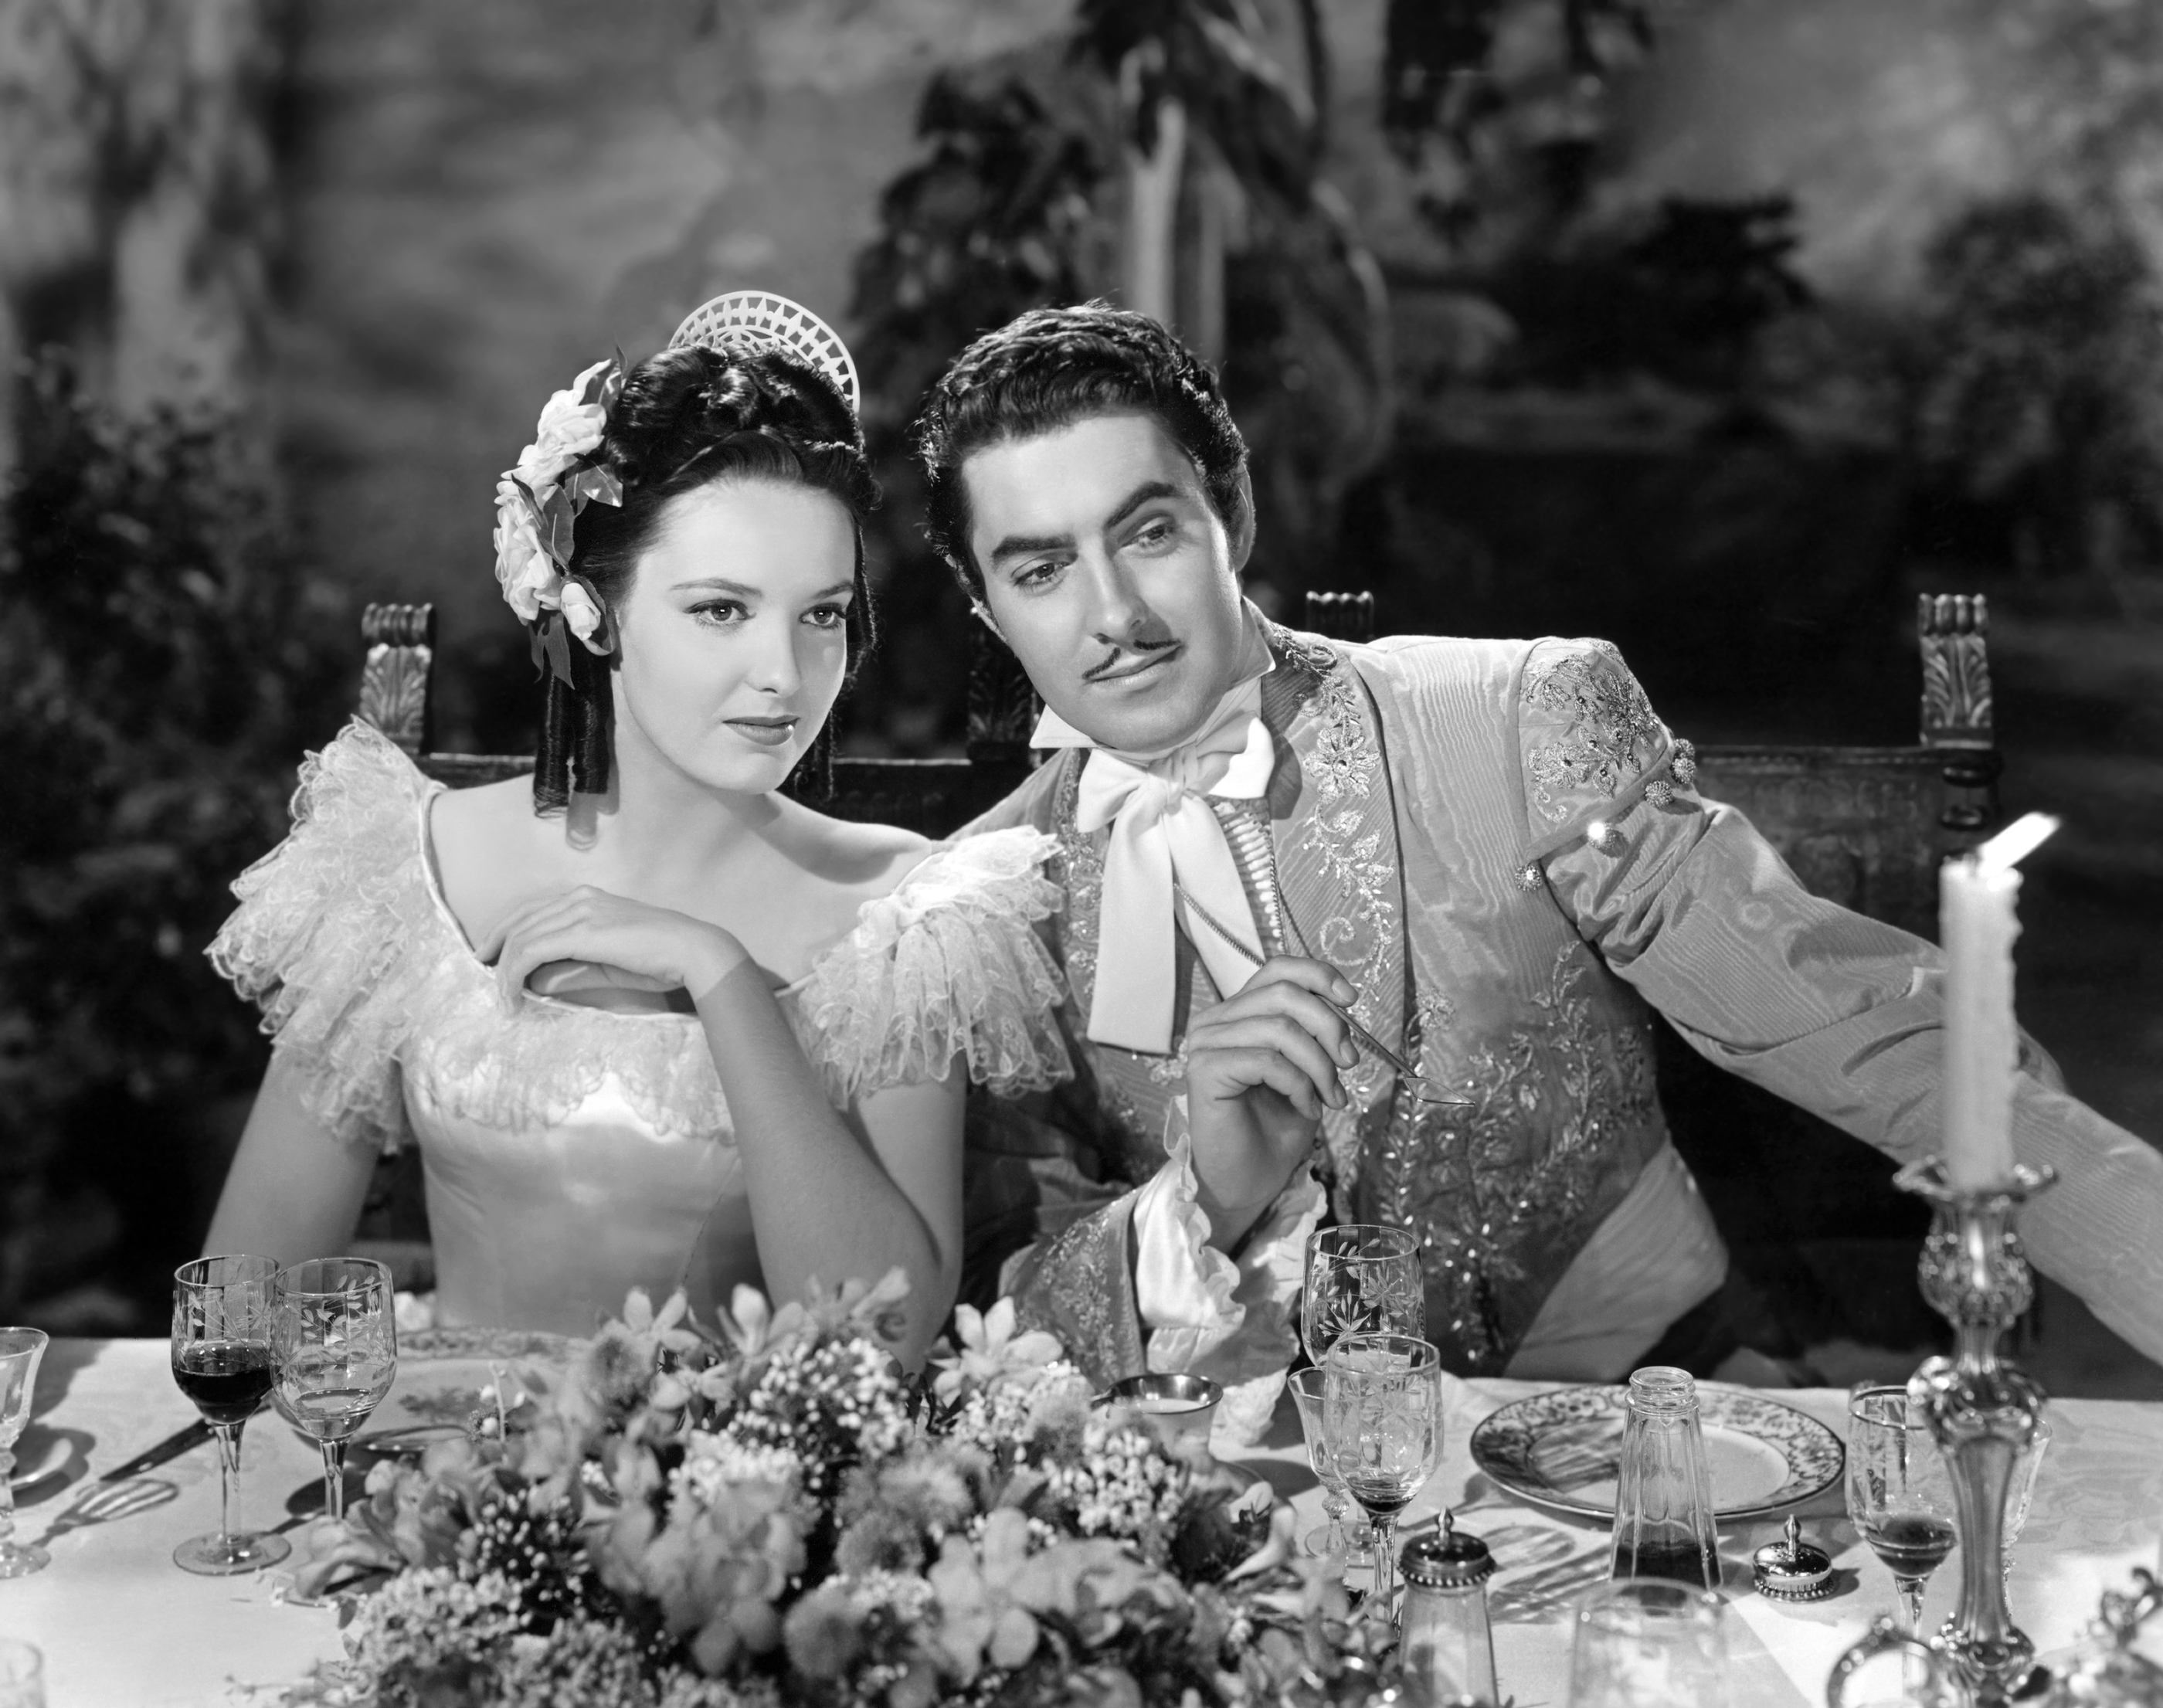 Tyrone Power, Jr. The Mark of Zorro with With Linda Darnell